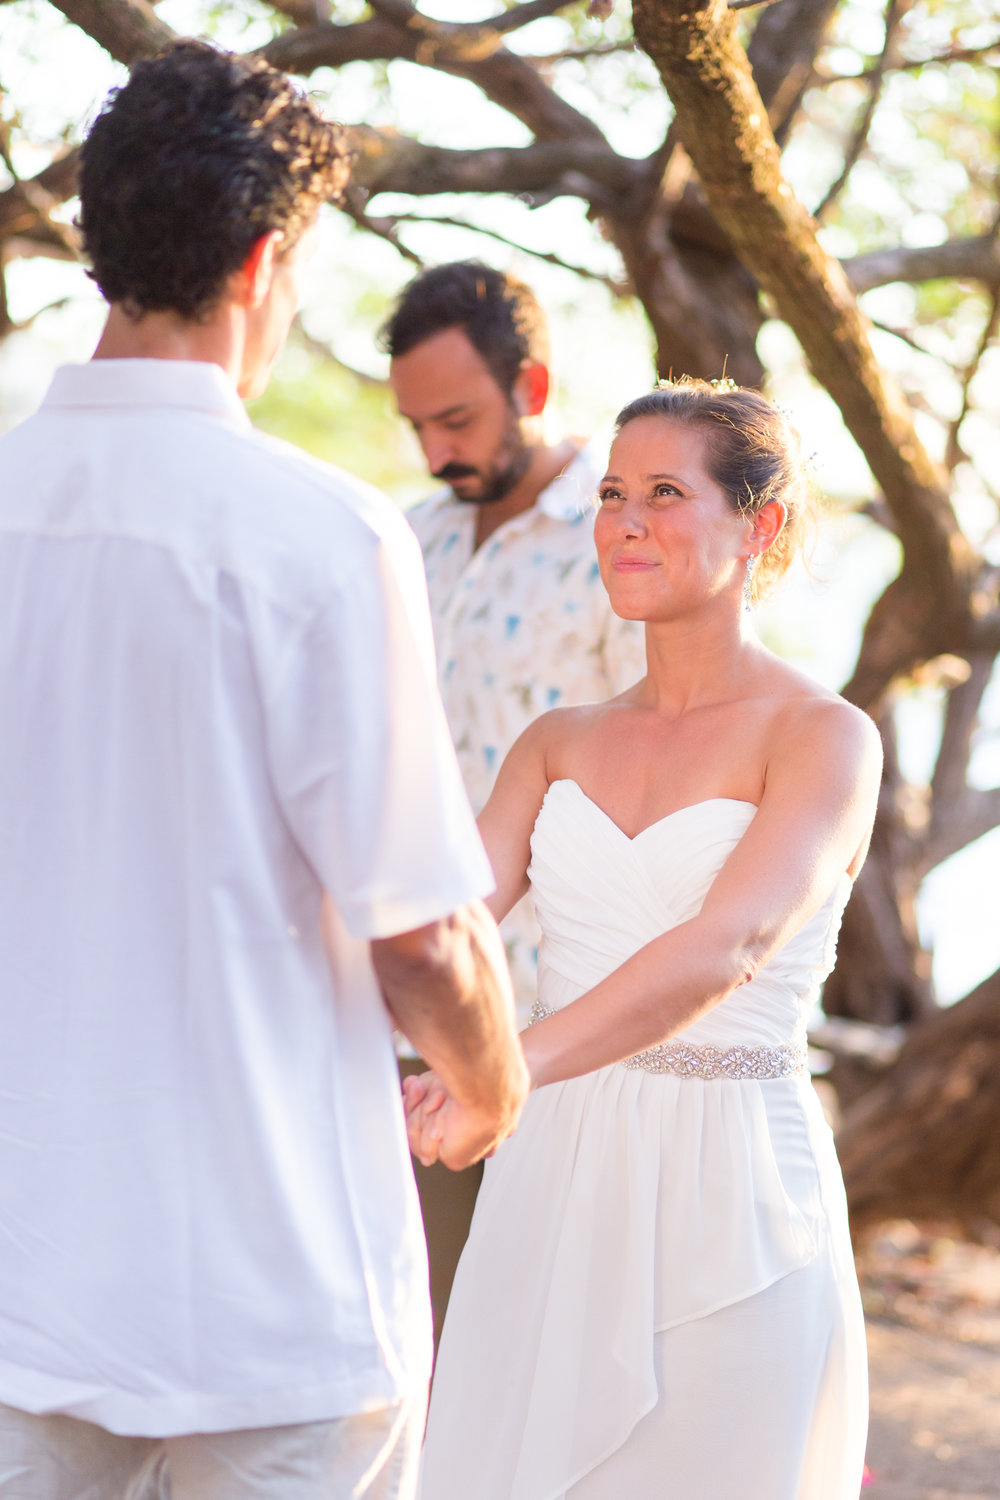 This bride struck everyone as soon as she stepped over the threshold of the church of the beginning of the wedding, the guests did not expect